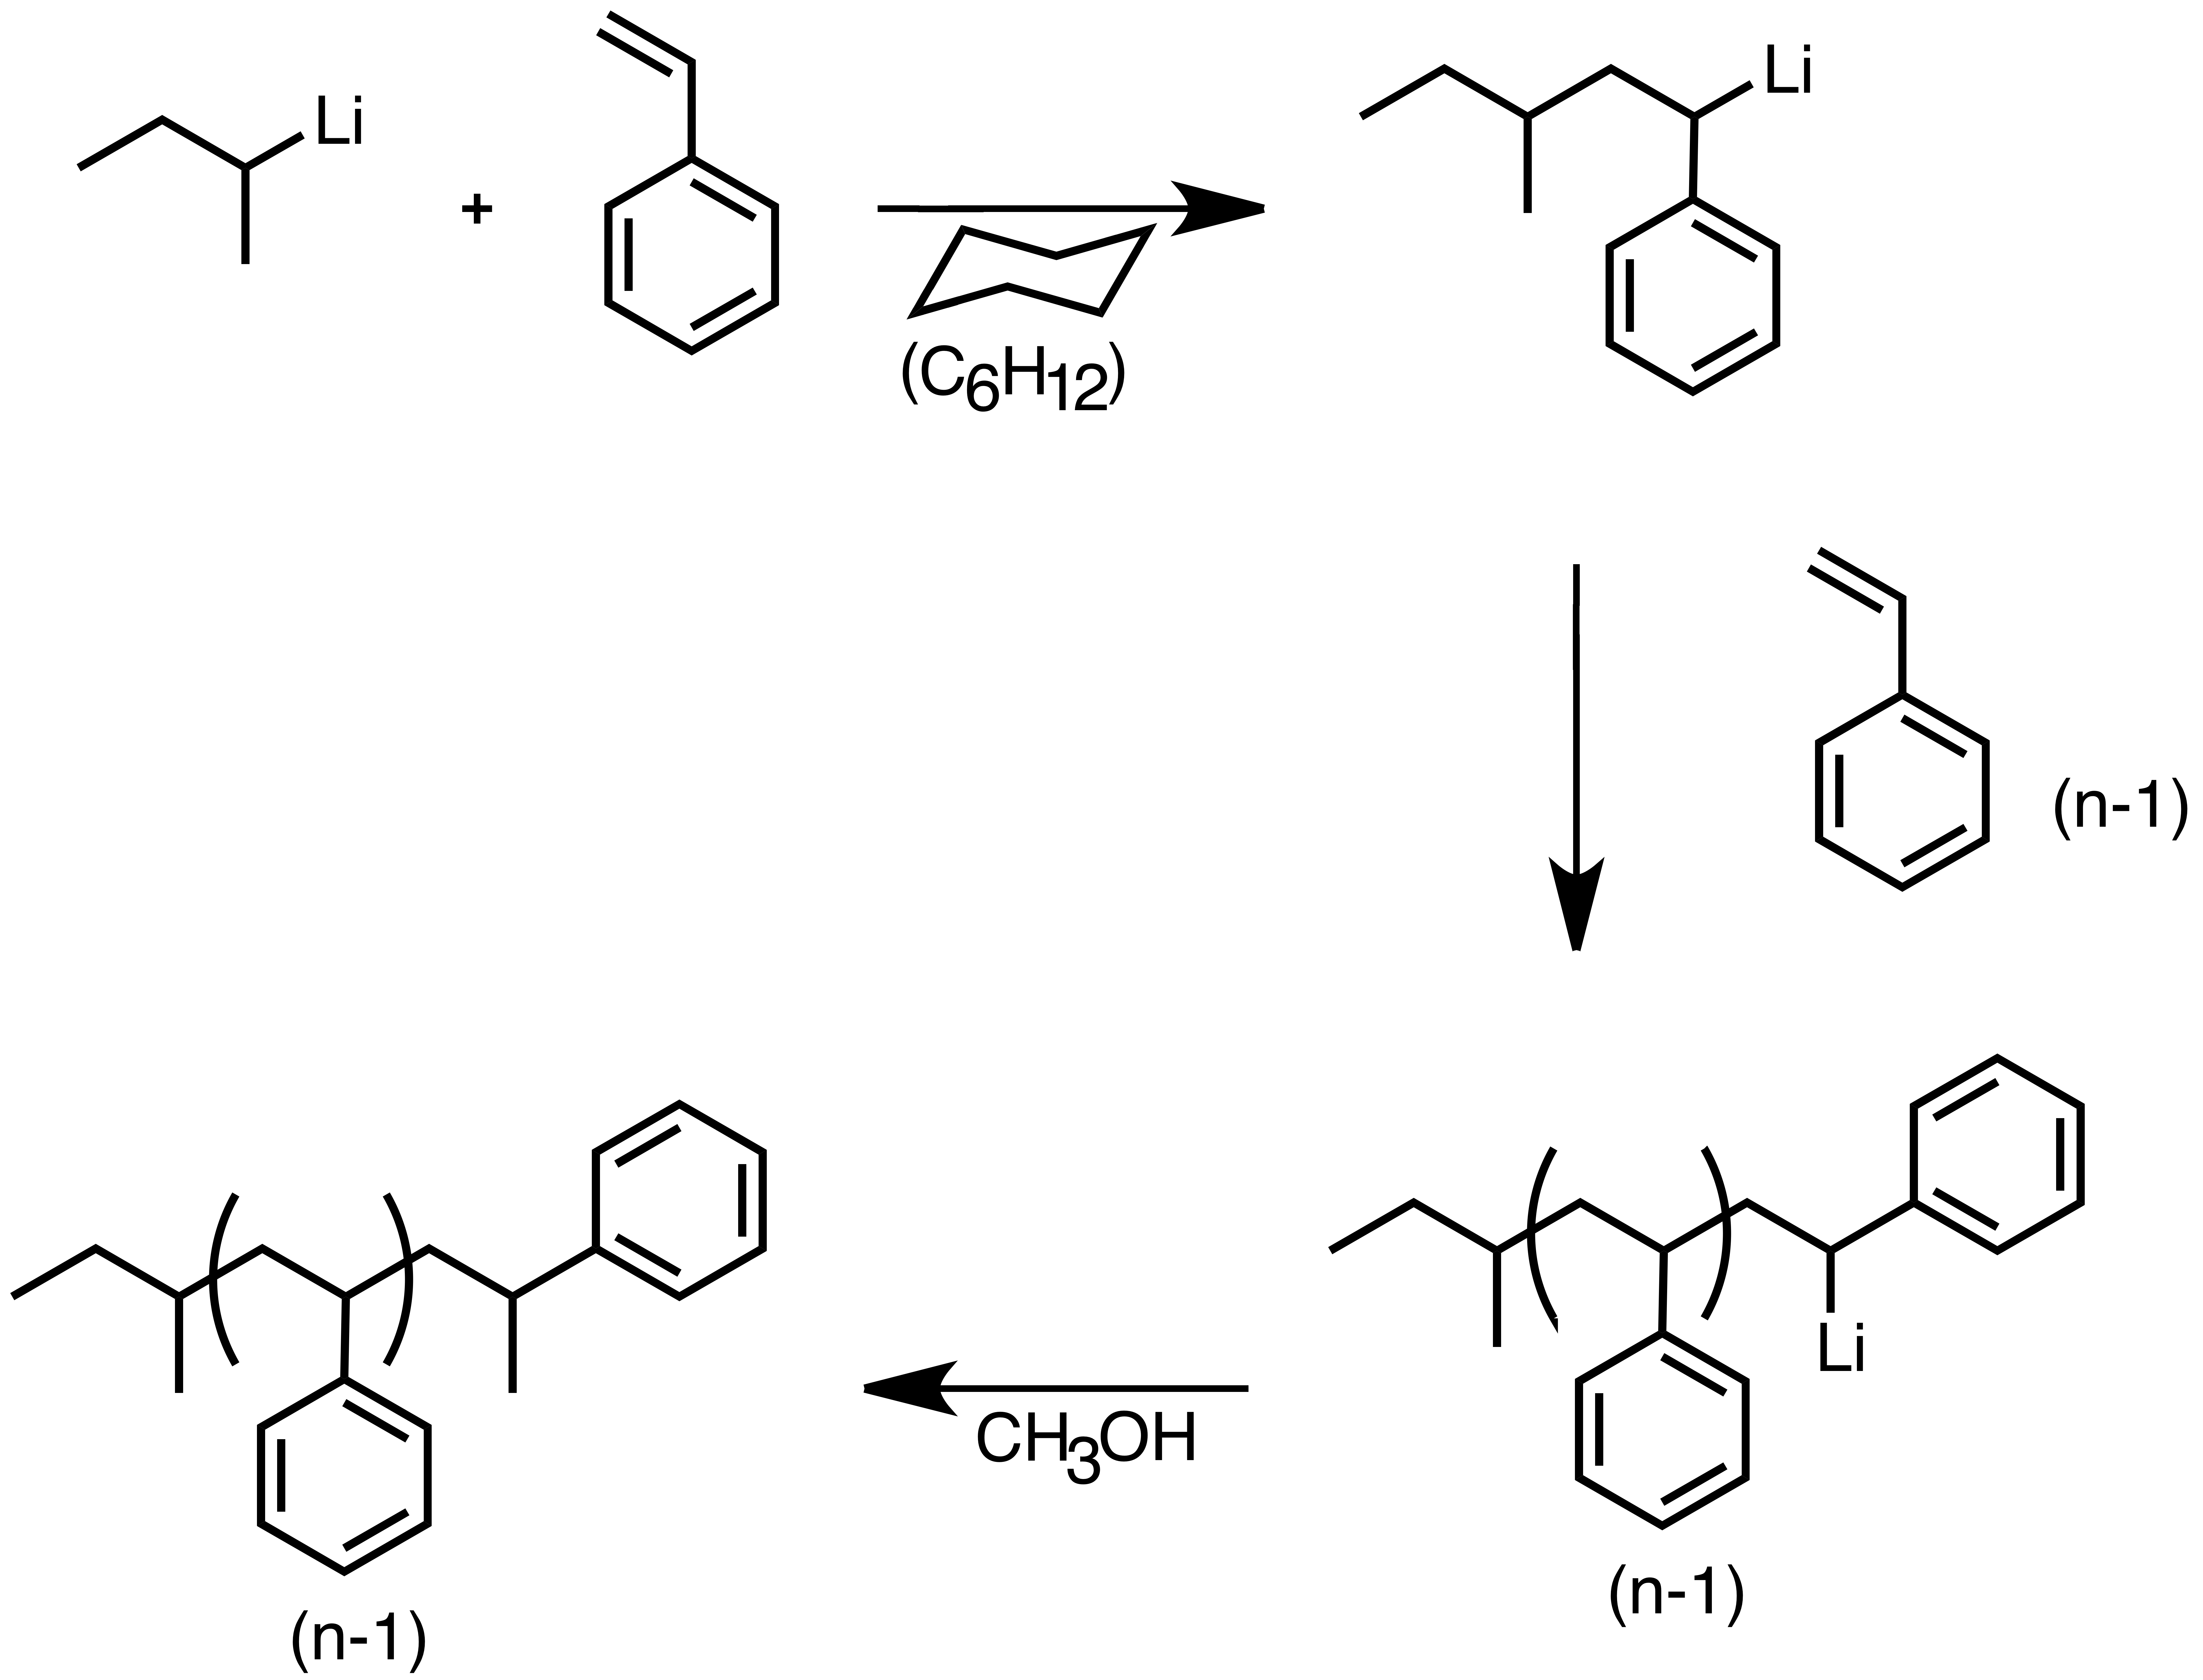 Fitxer Anionic Polymerization Of Styrene Initiated By Sec